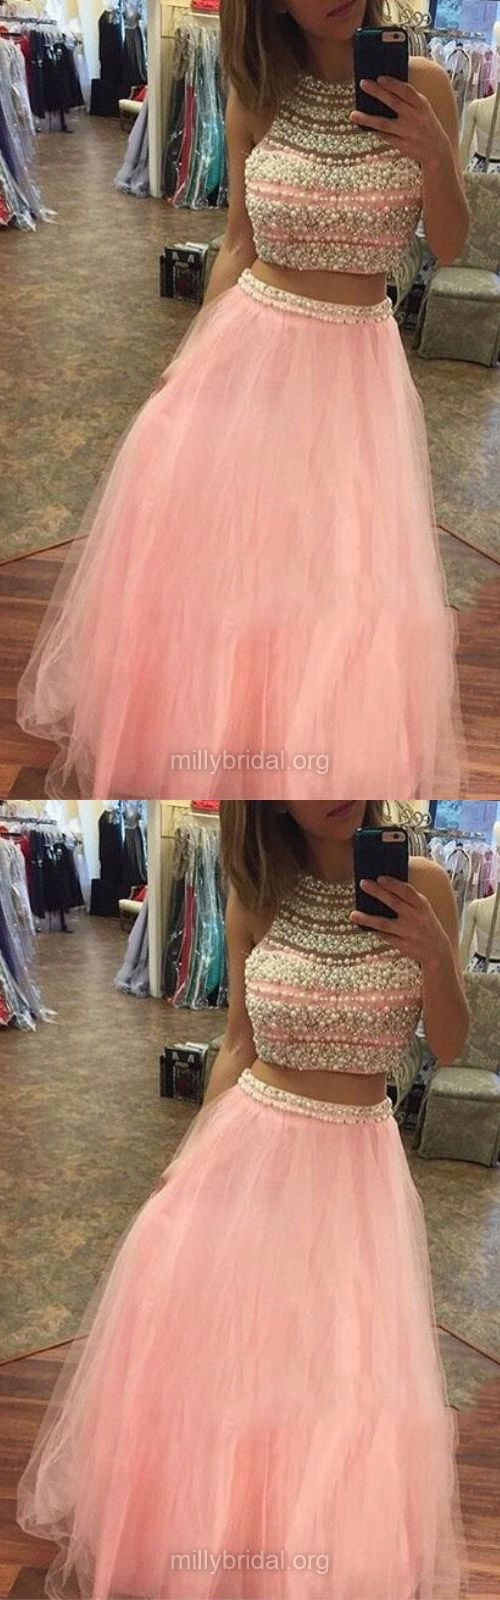 Pink Prom Dresses Two Piece, 2018 Formal Party Dresses Cheap, Long Evening Dresses A-line Scoop Neck, Tulle  Pearl Detailing Pageant Dresses Modest